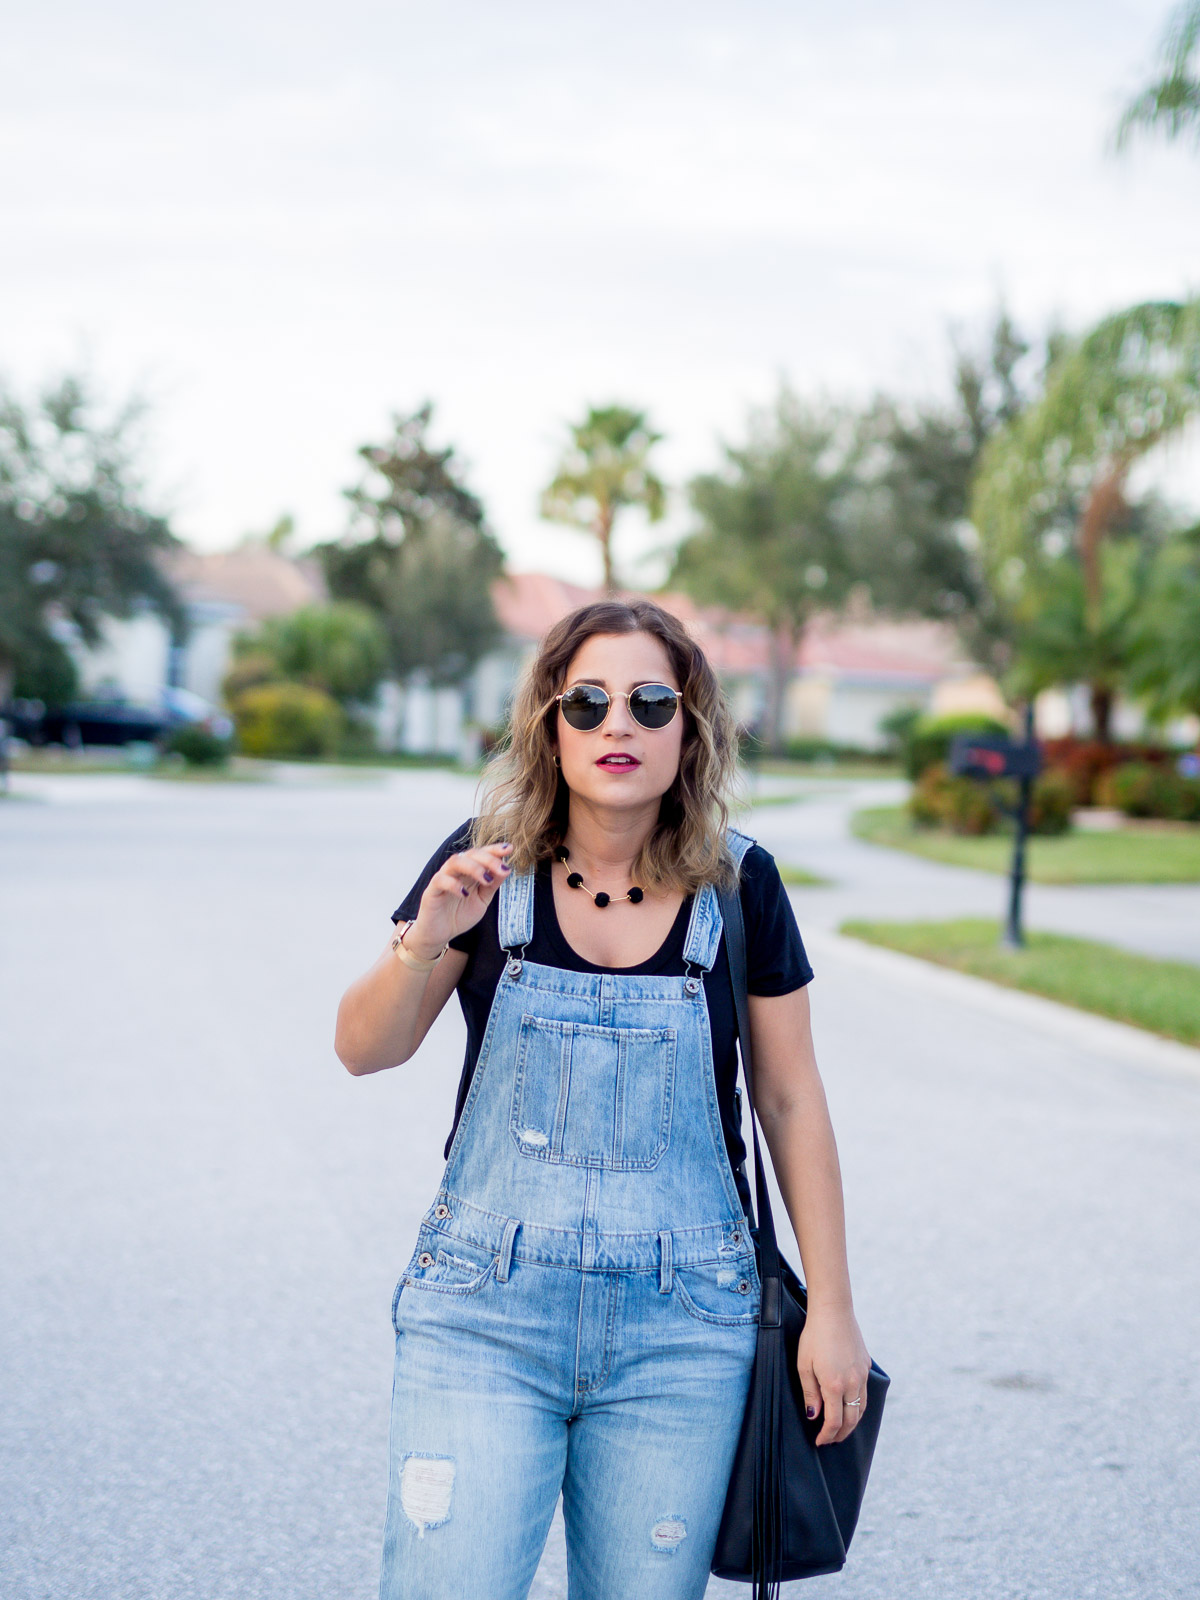 Toronto petite fashion and lifestyle blogger, Jackie from Something About That, wearing ripped overalls from Lucky Brand with a simple black tee and a pom pom necklace from Madewell